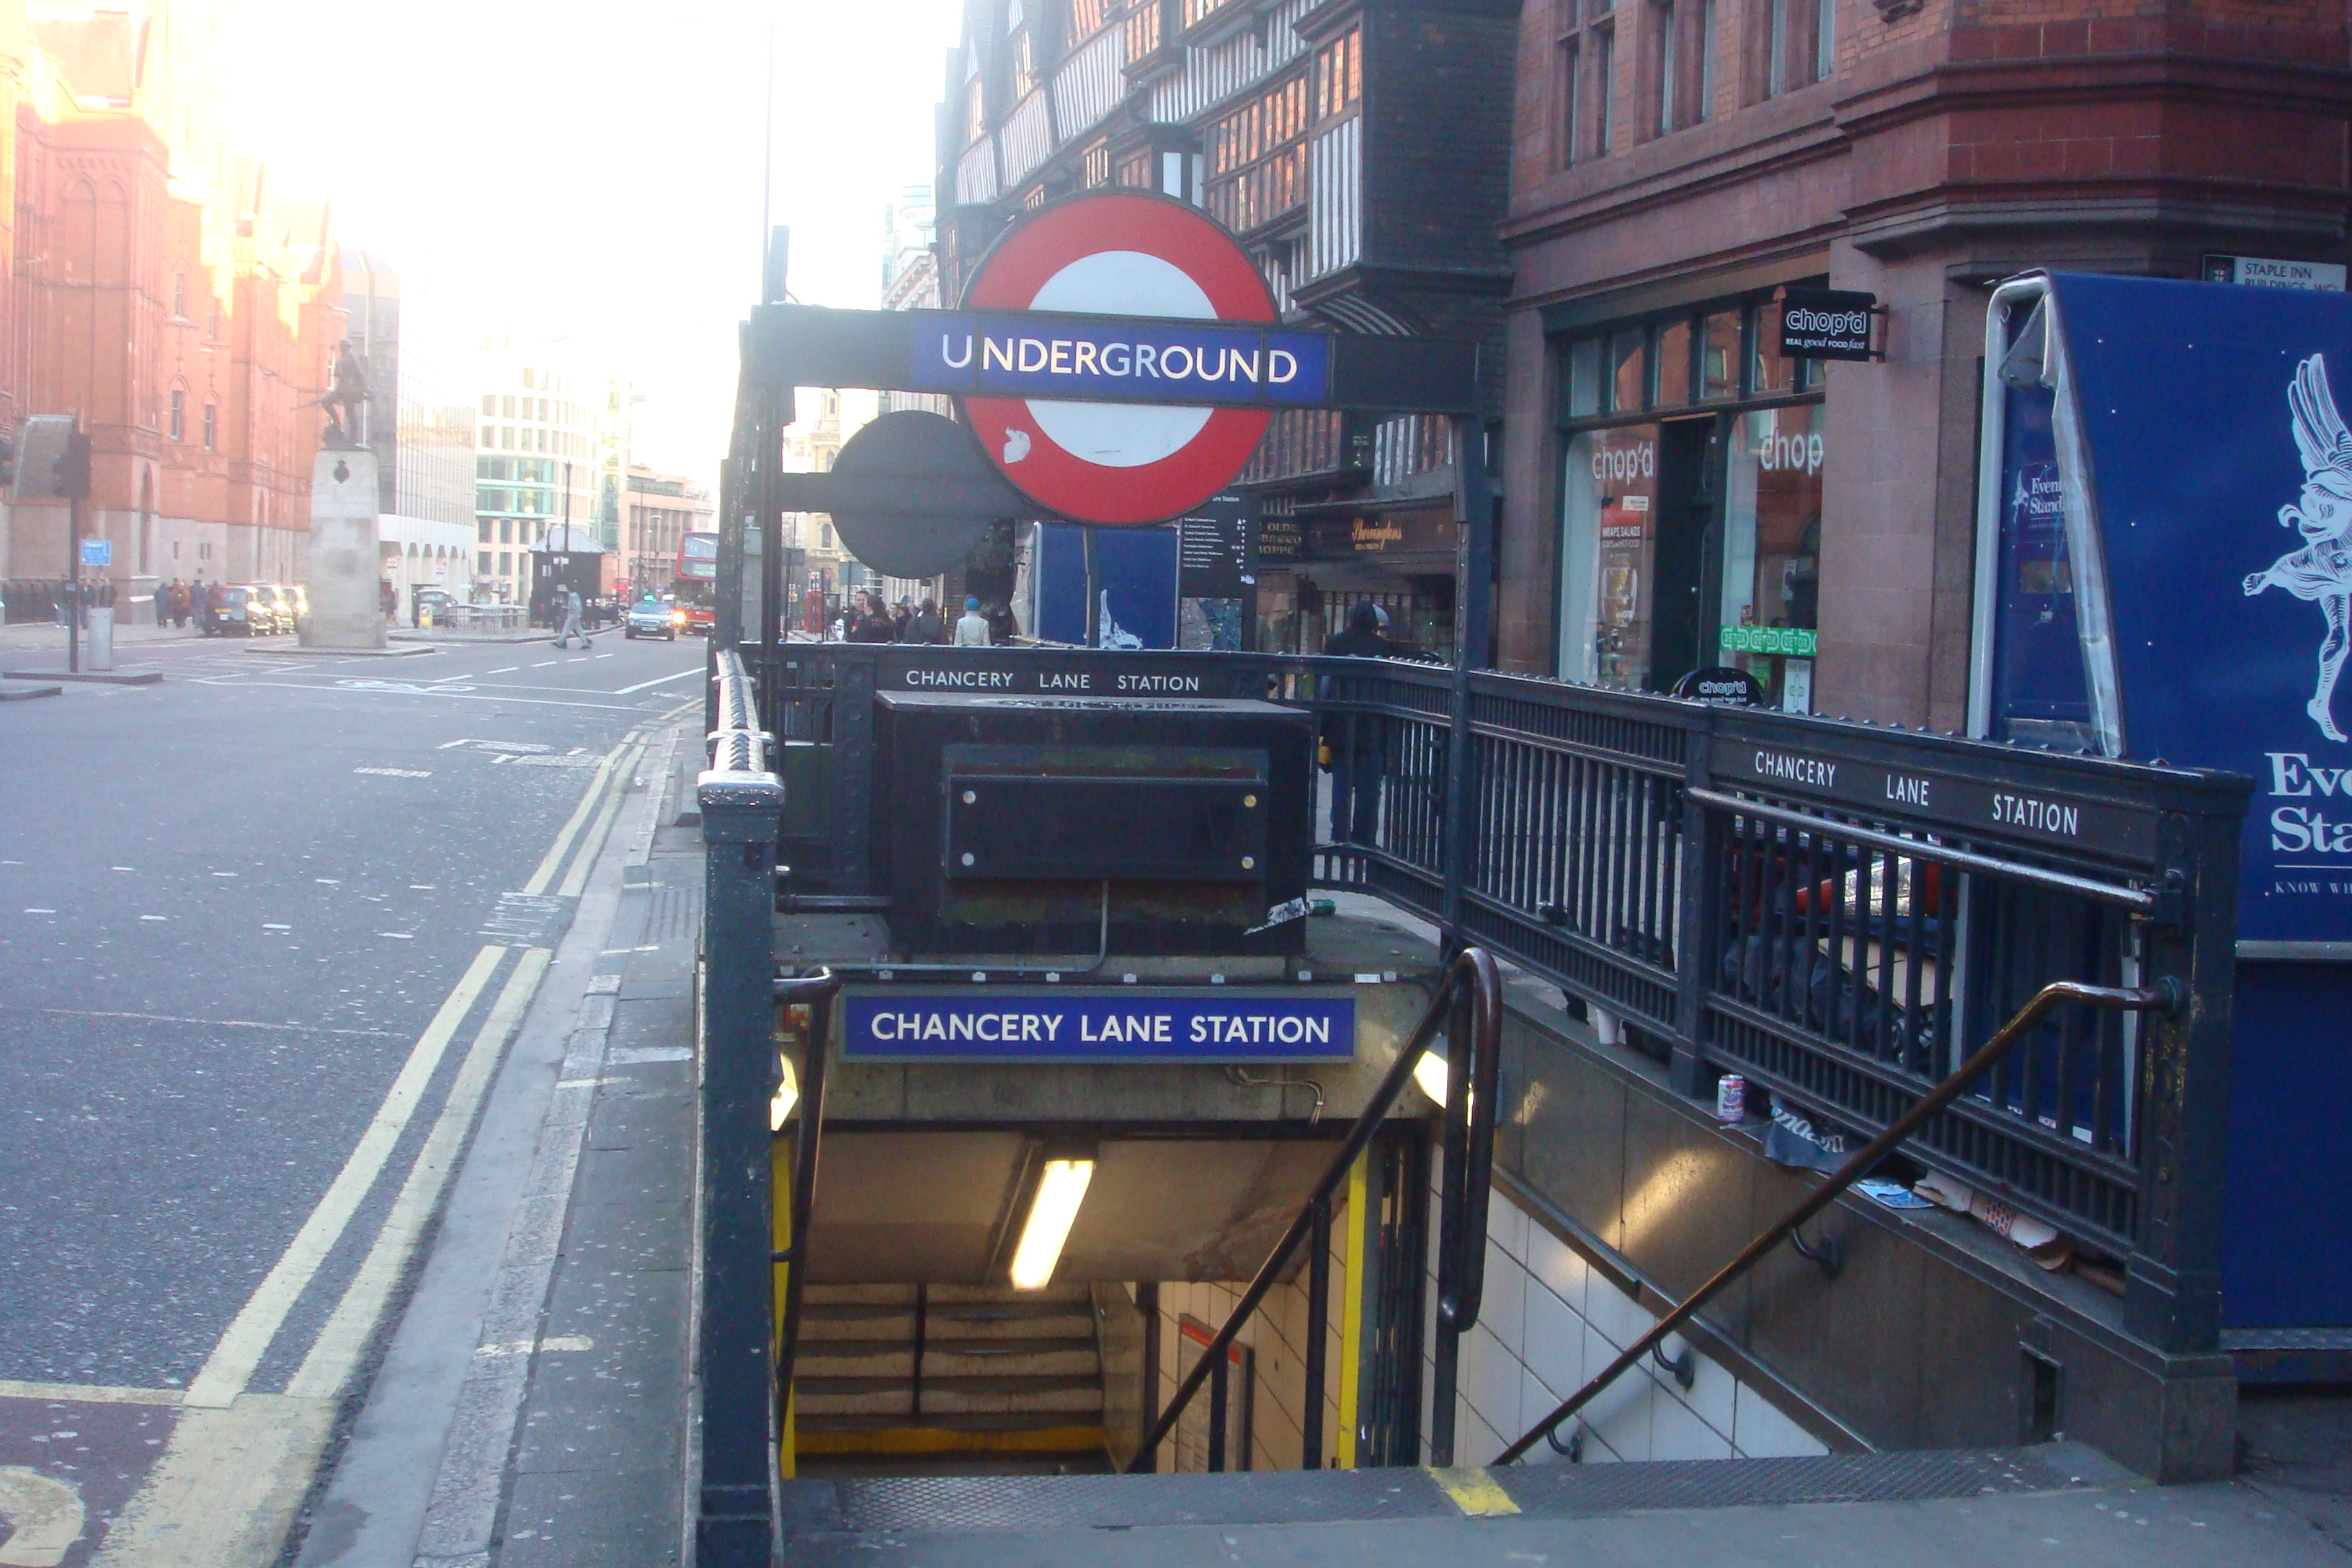 File:Chancery Lane tube station London.JPG - Wikimedia Commons